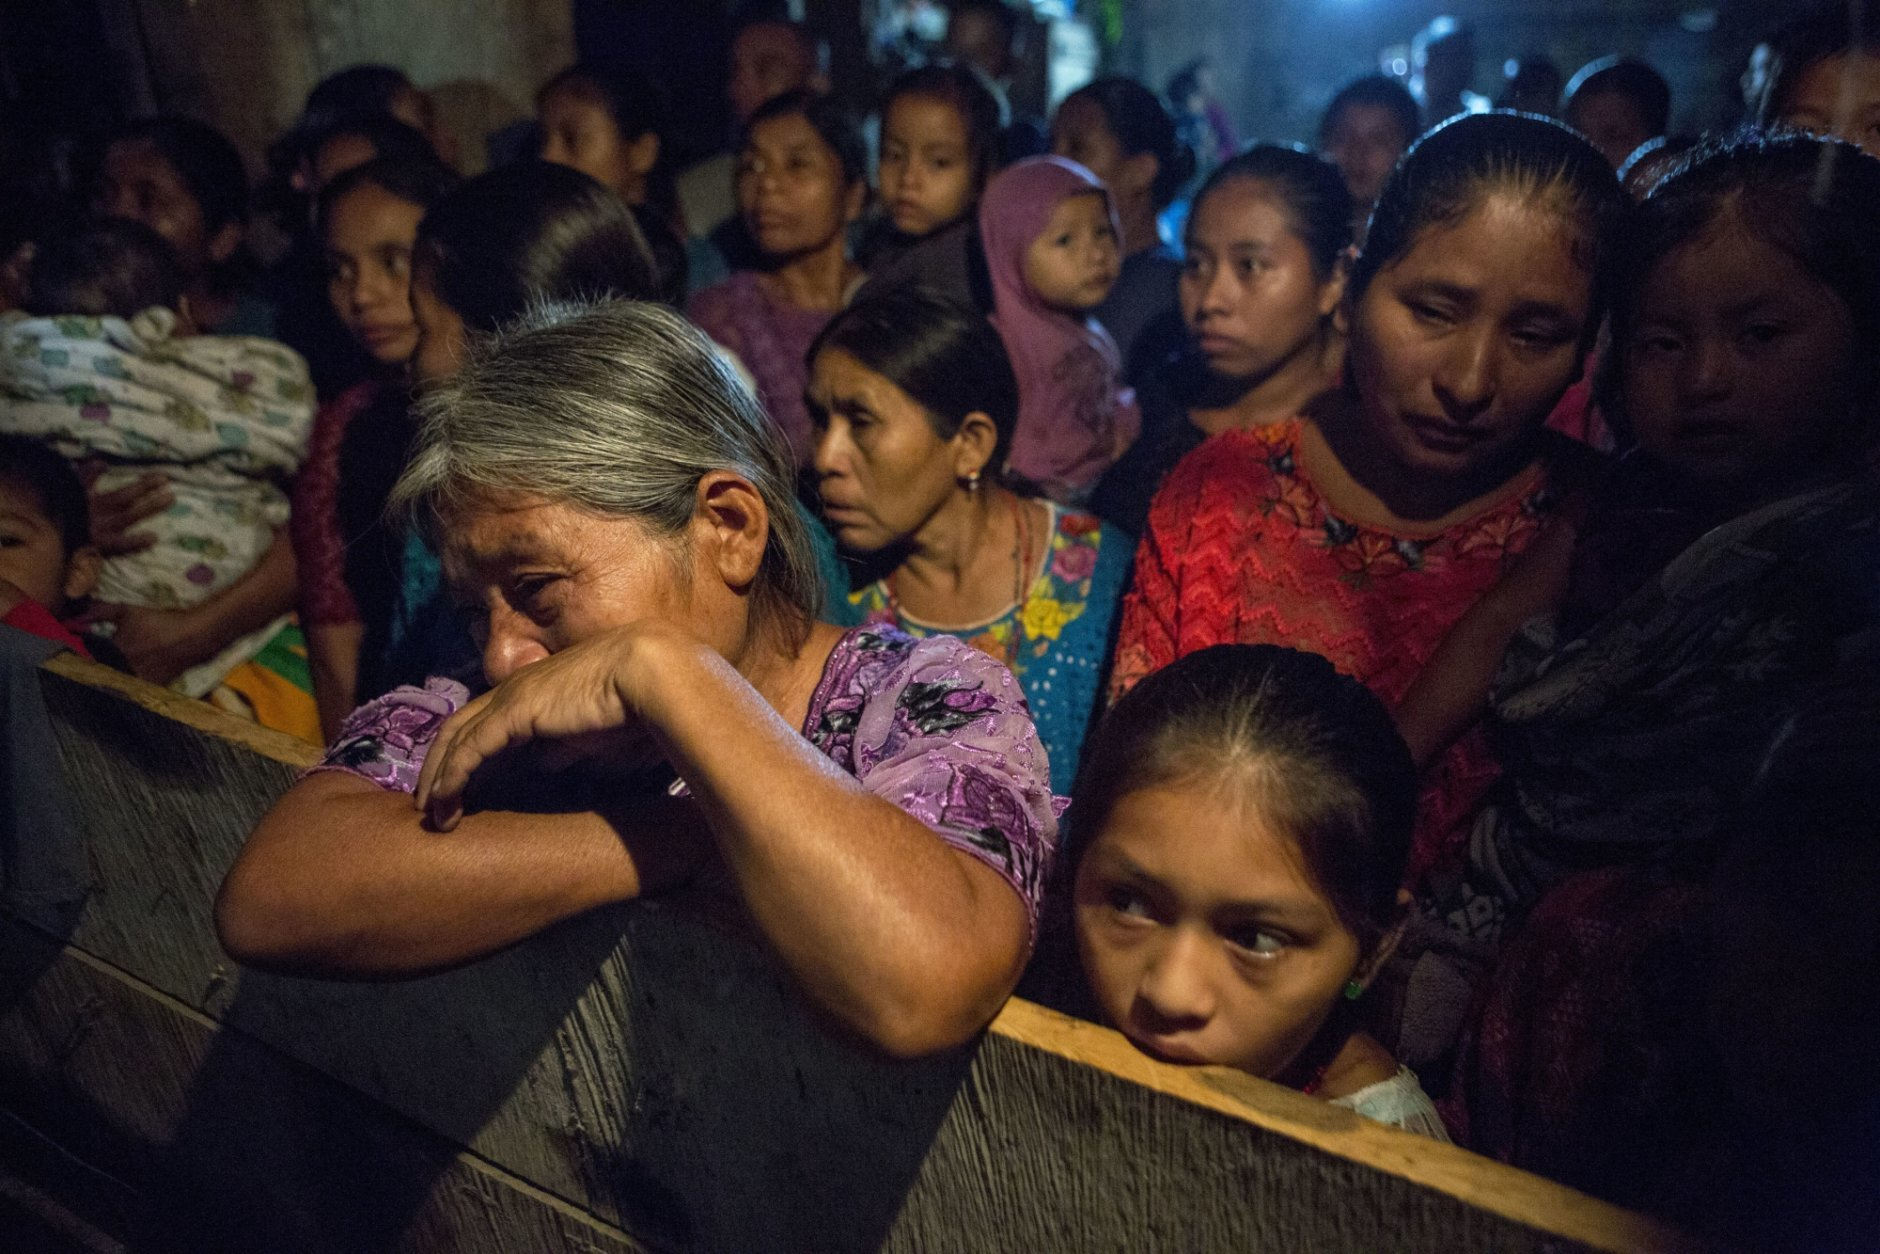 Elvira Choc grieves as she attends a memorial service for her 7-year-old granddaughter Jakelin Caal Maquin, in San Antonio Secortez, Guatemala, Monday, Dec. 24, 2018. The body of the 7-year-old girl who died while in the custody of the U.S. Border Patrol was handed over to family members in her native Guatemala on Monday for a last goodbye. (AP Photo/ Oliver de Ros)